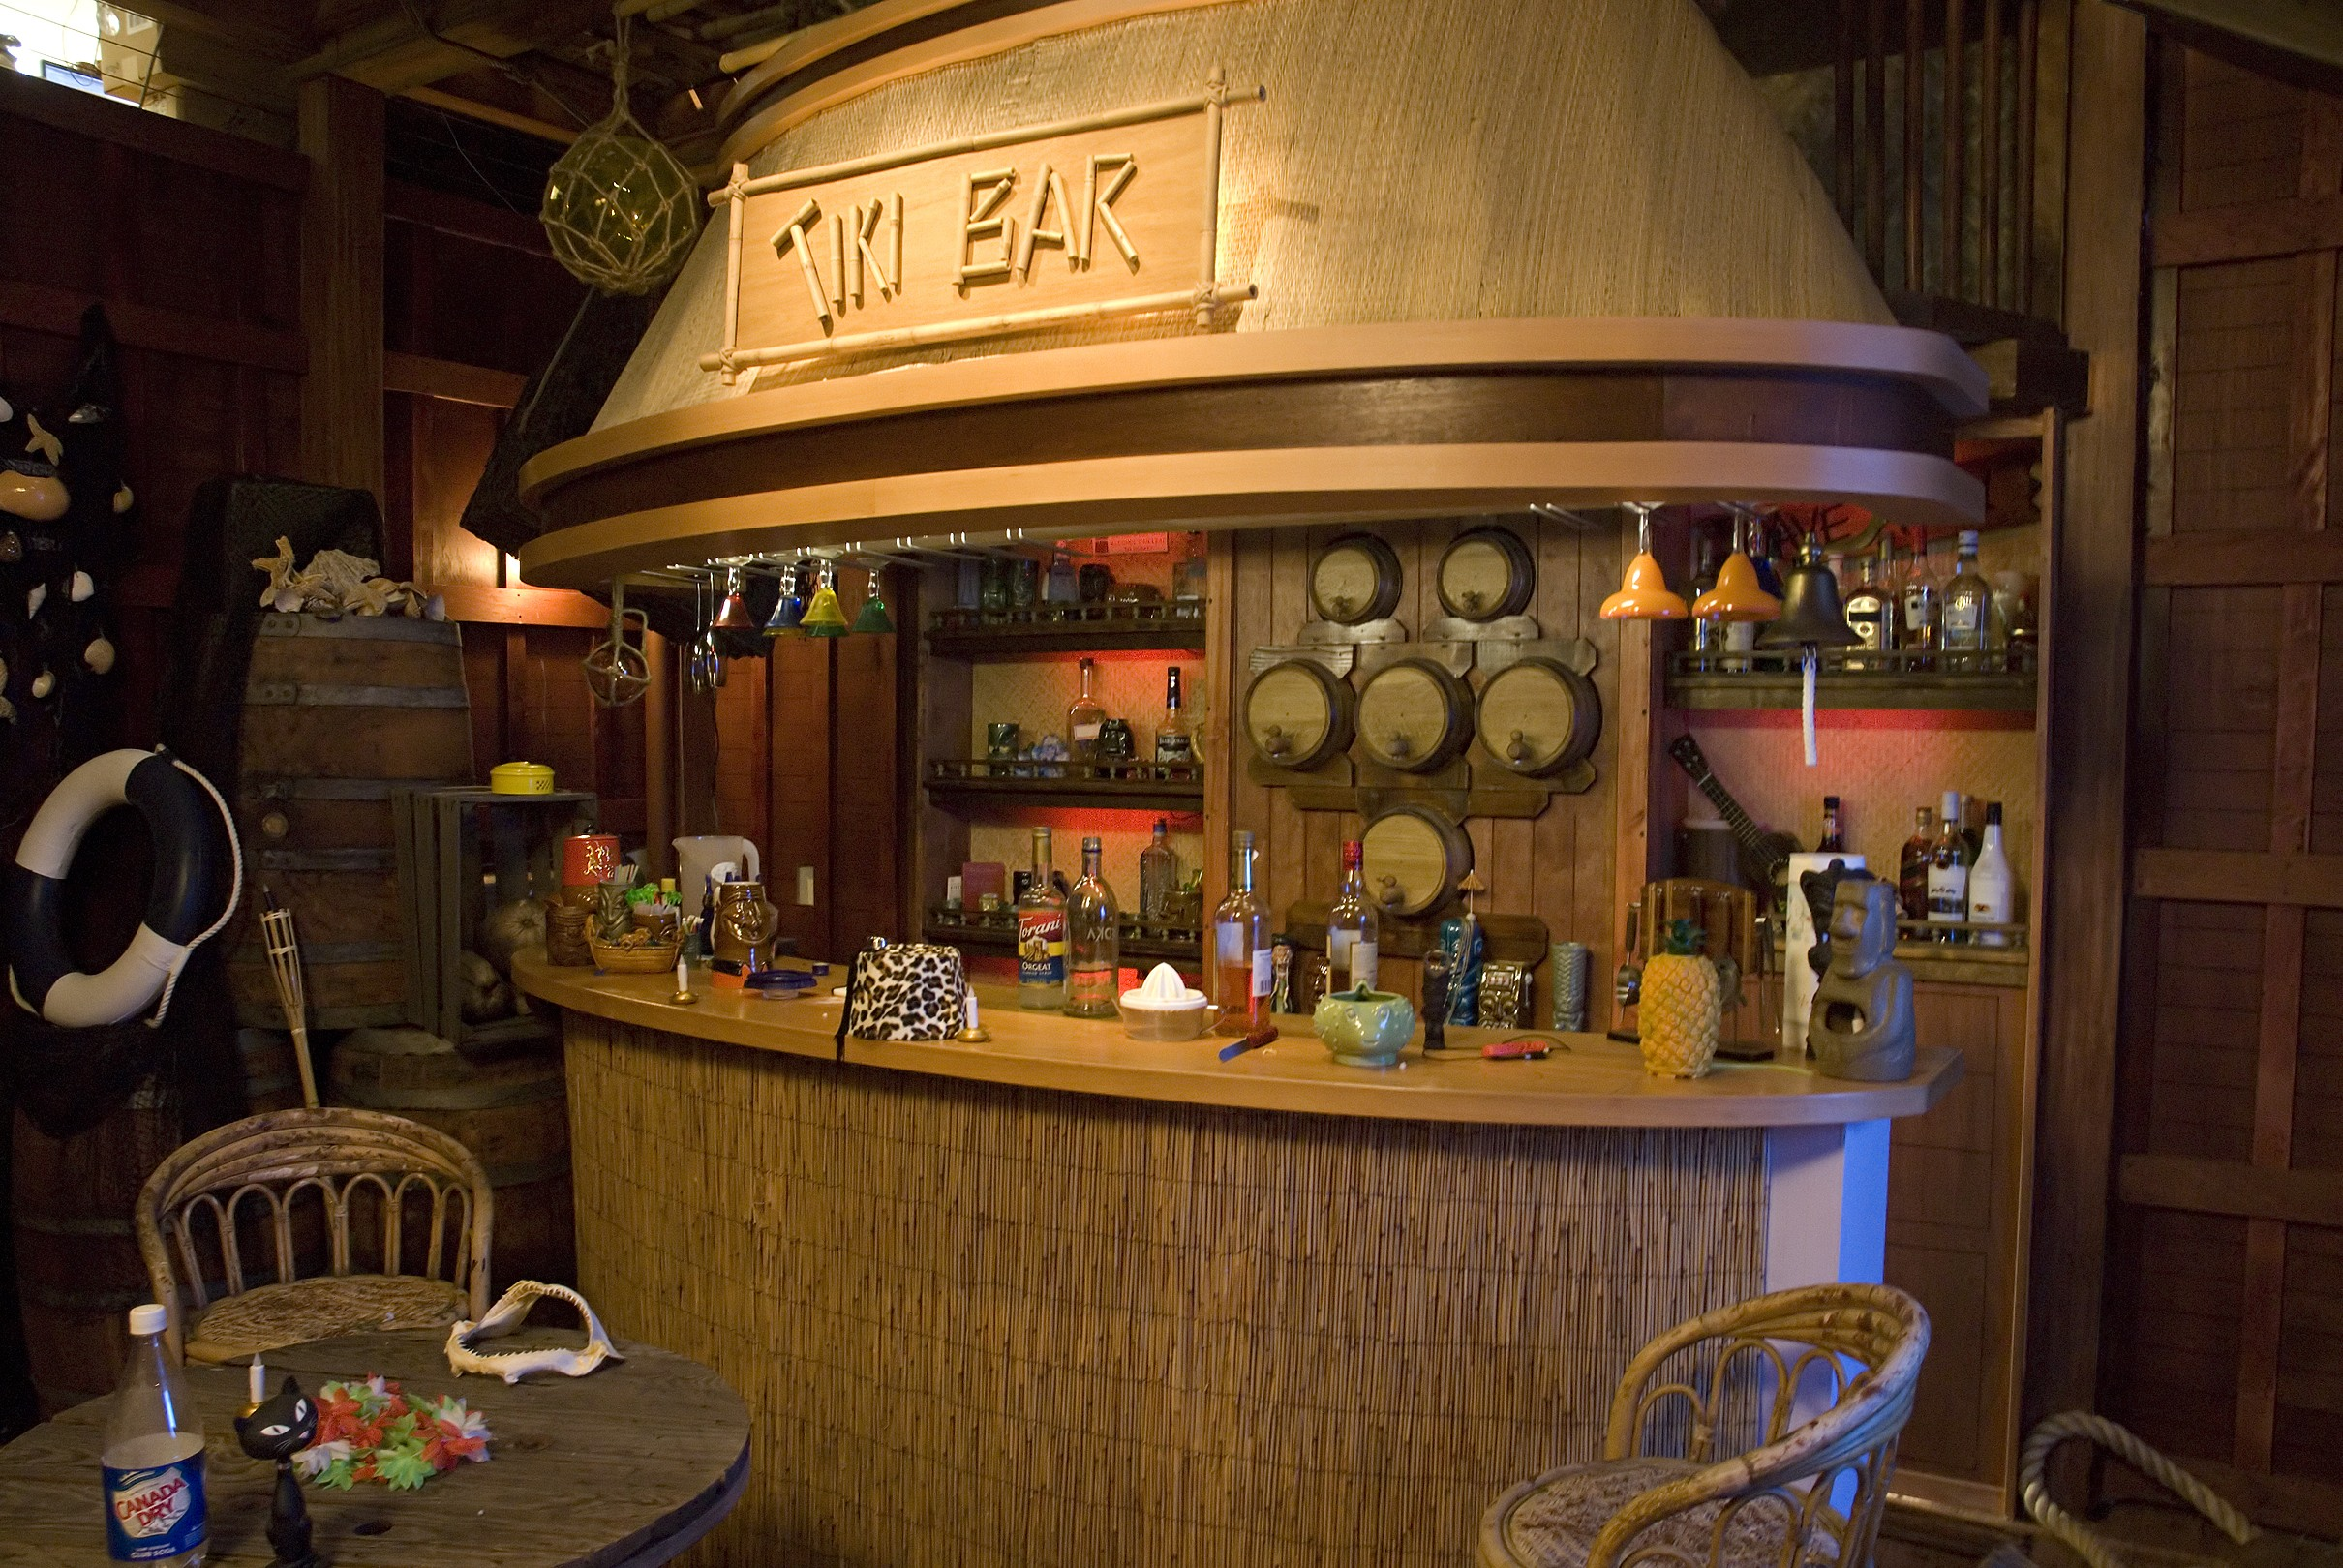 the tiki bar tv set